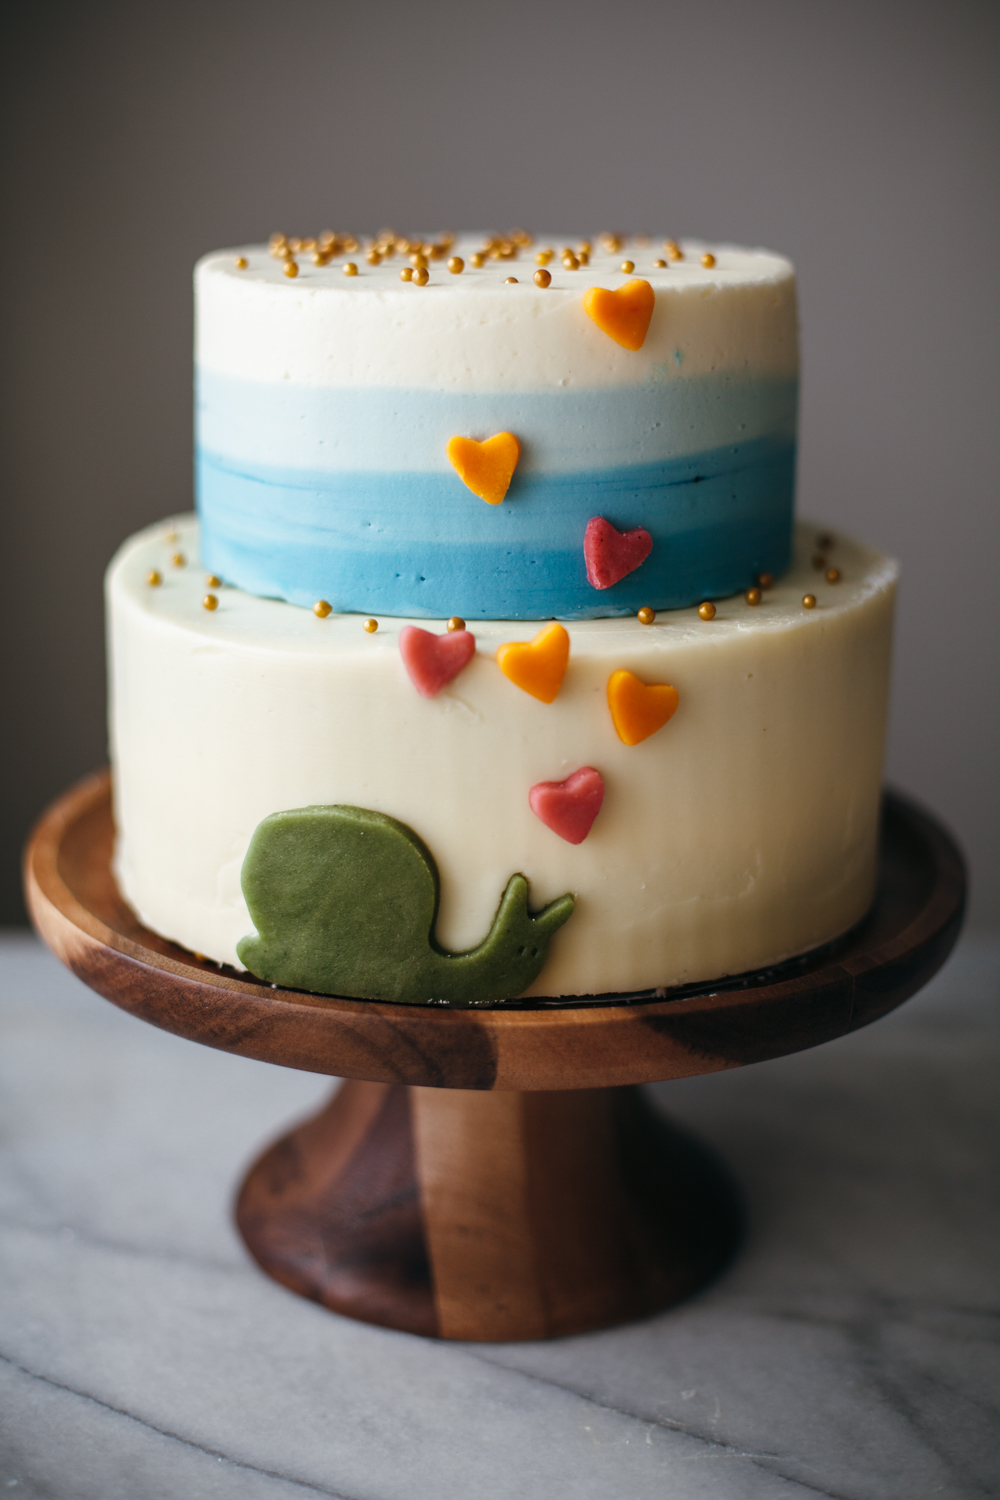 Cake decorating tips molly yeh for Decorating advice